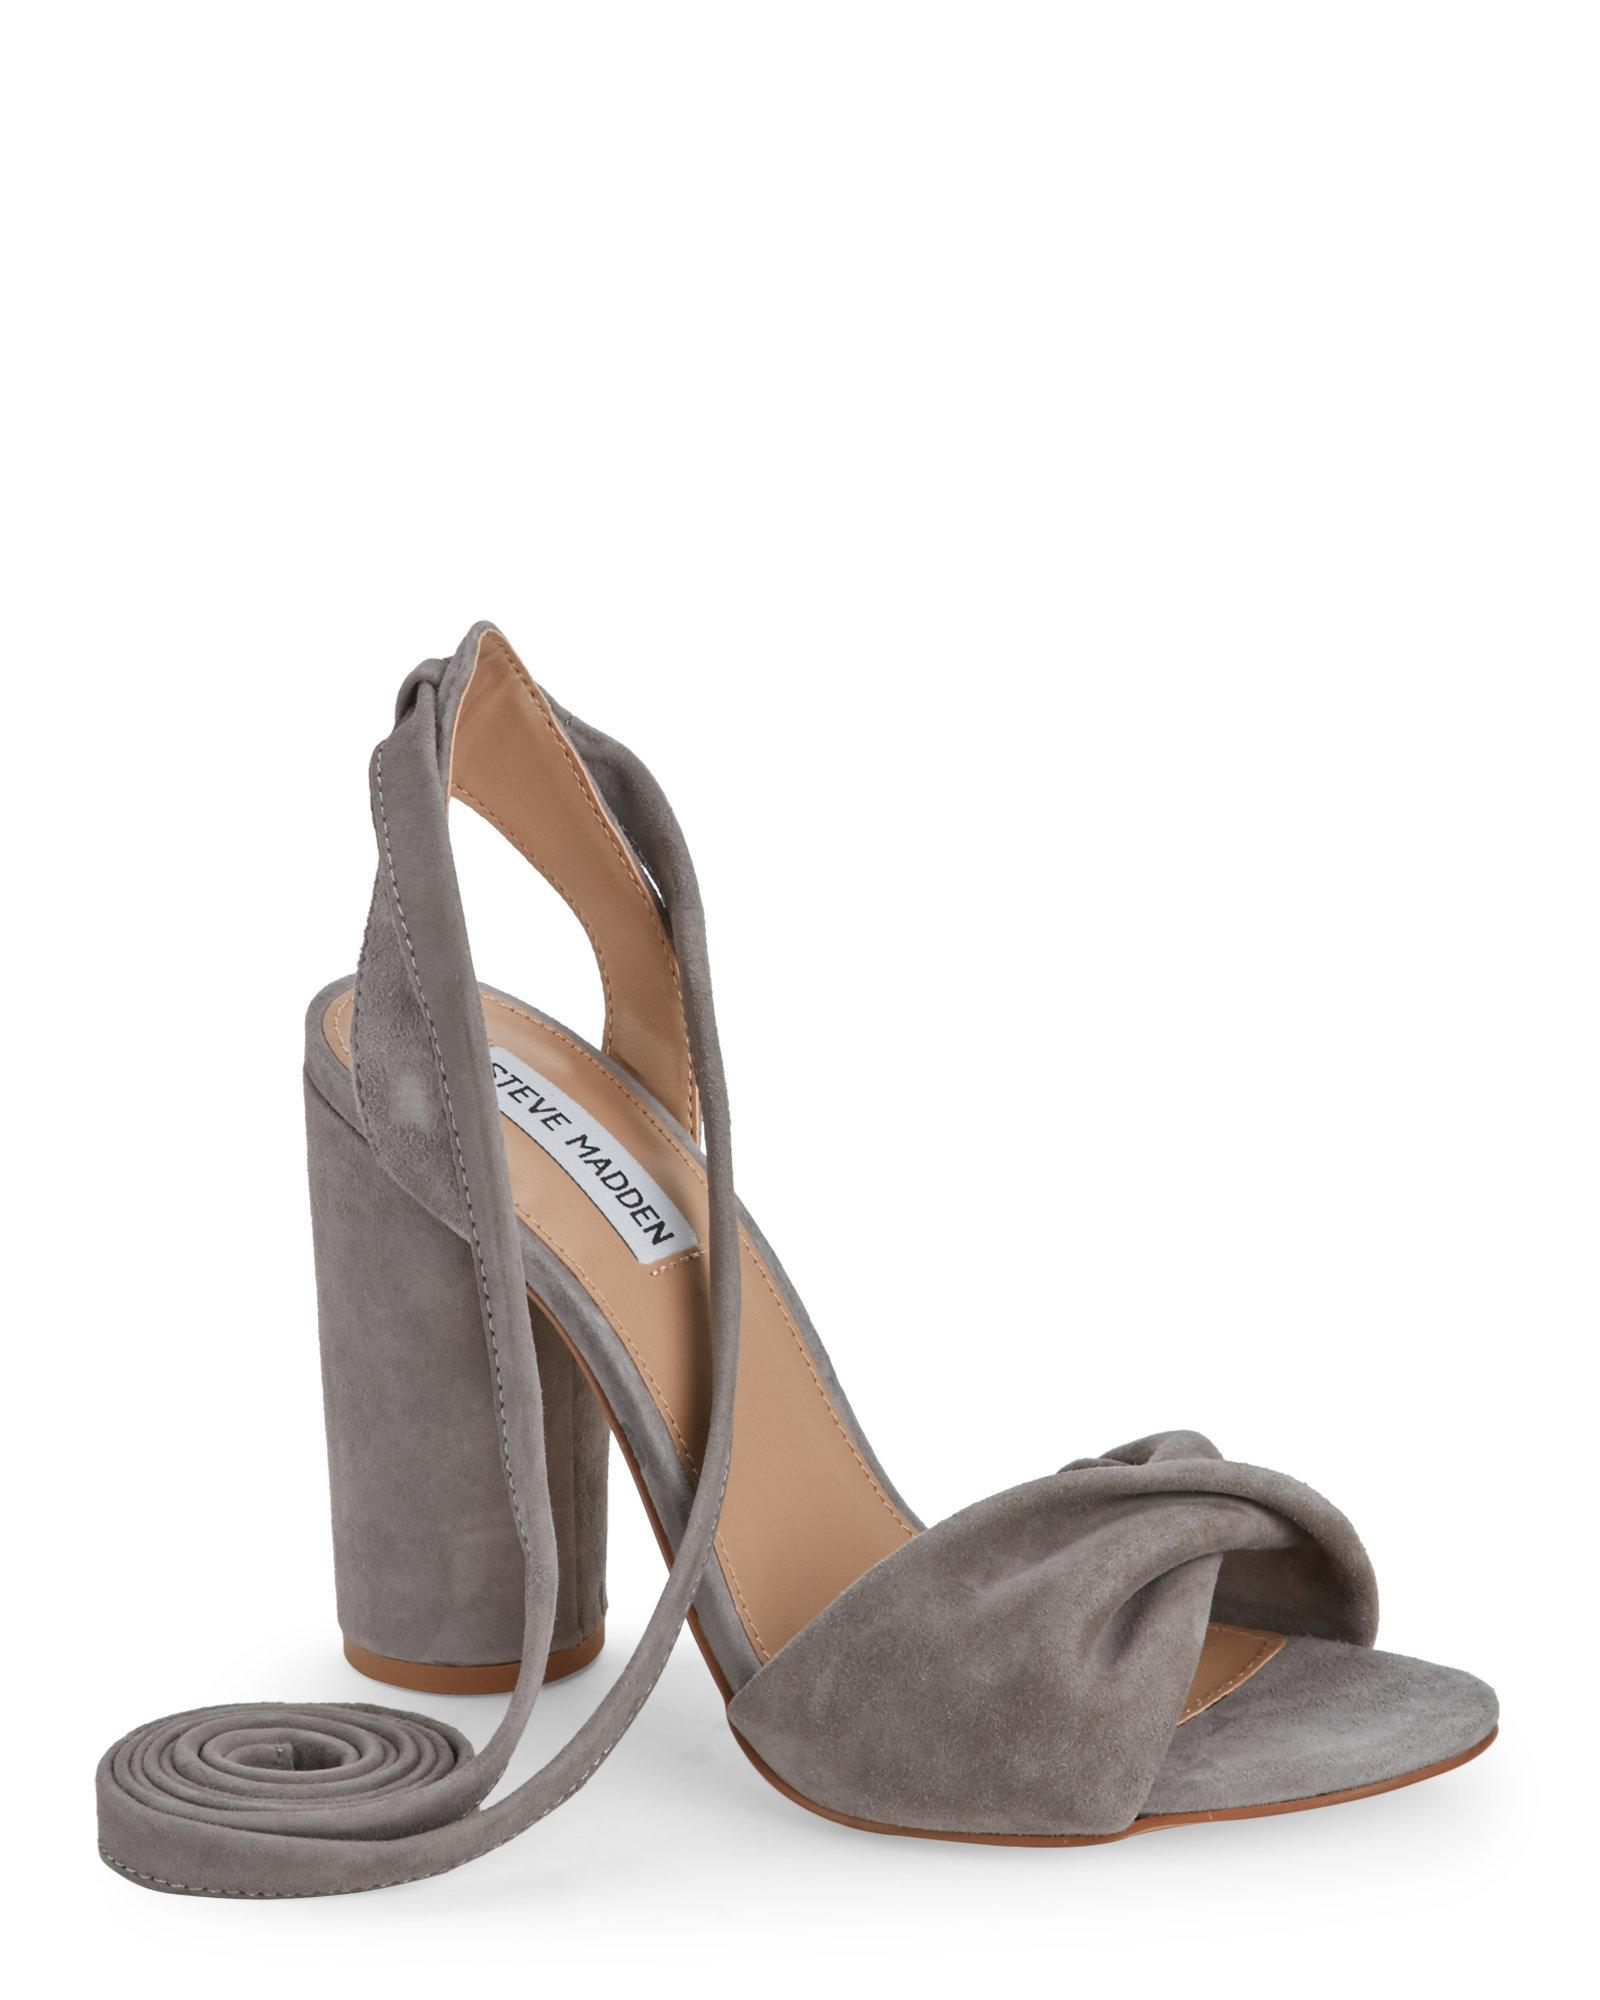 cb931b4c65e Lyst - Steve Madden Grey Clary Ankle Wrap Sandals in Gray